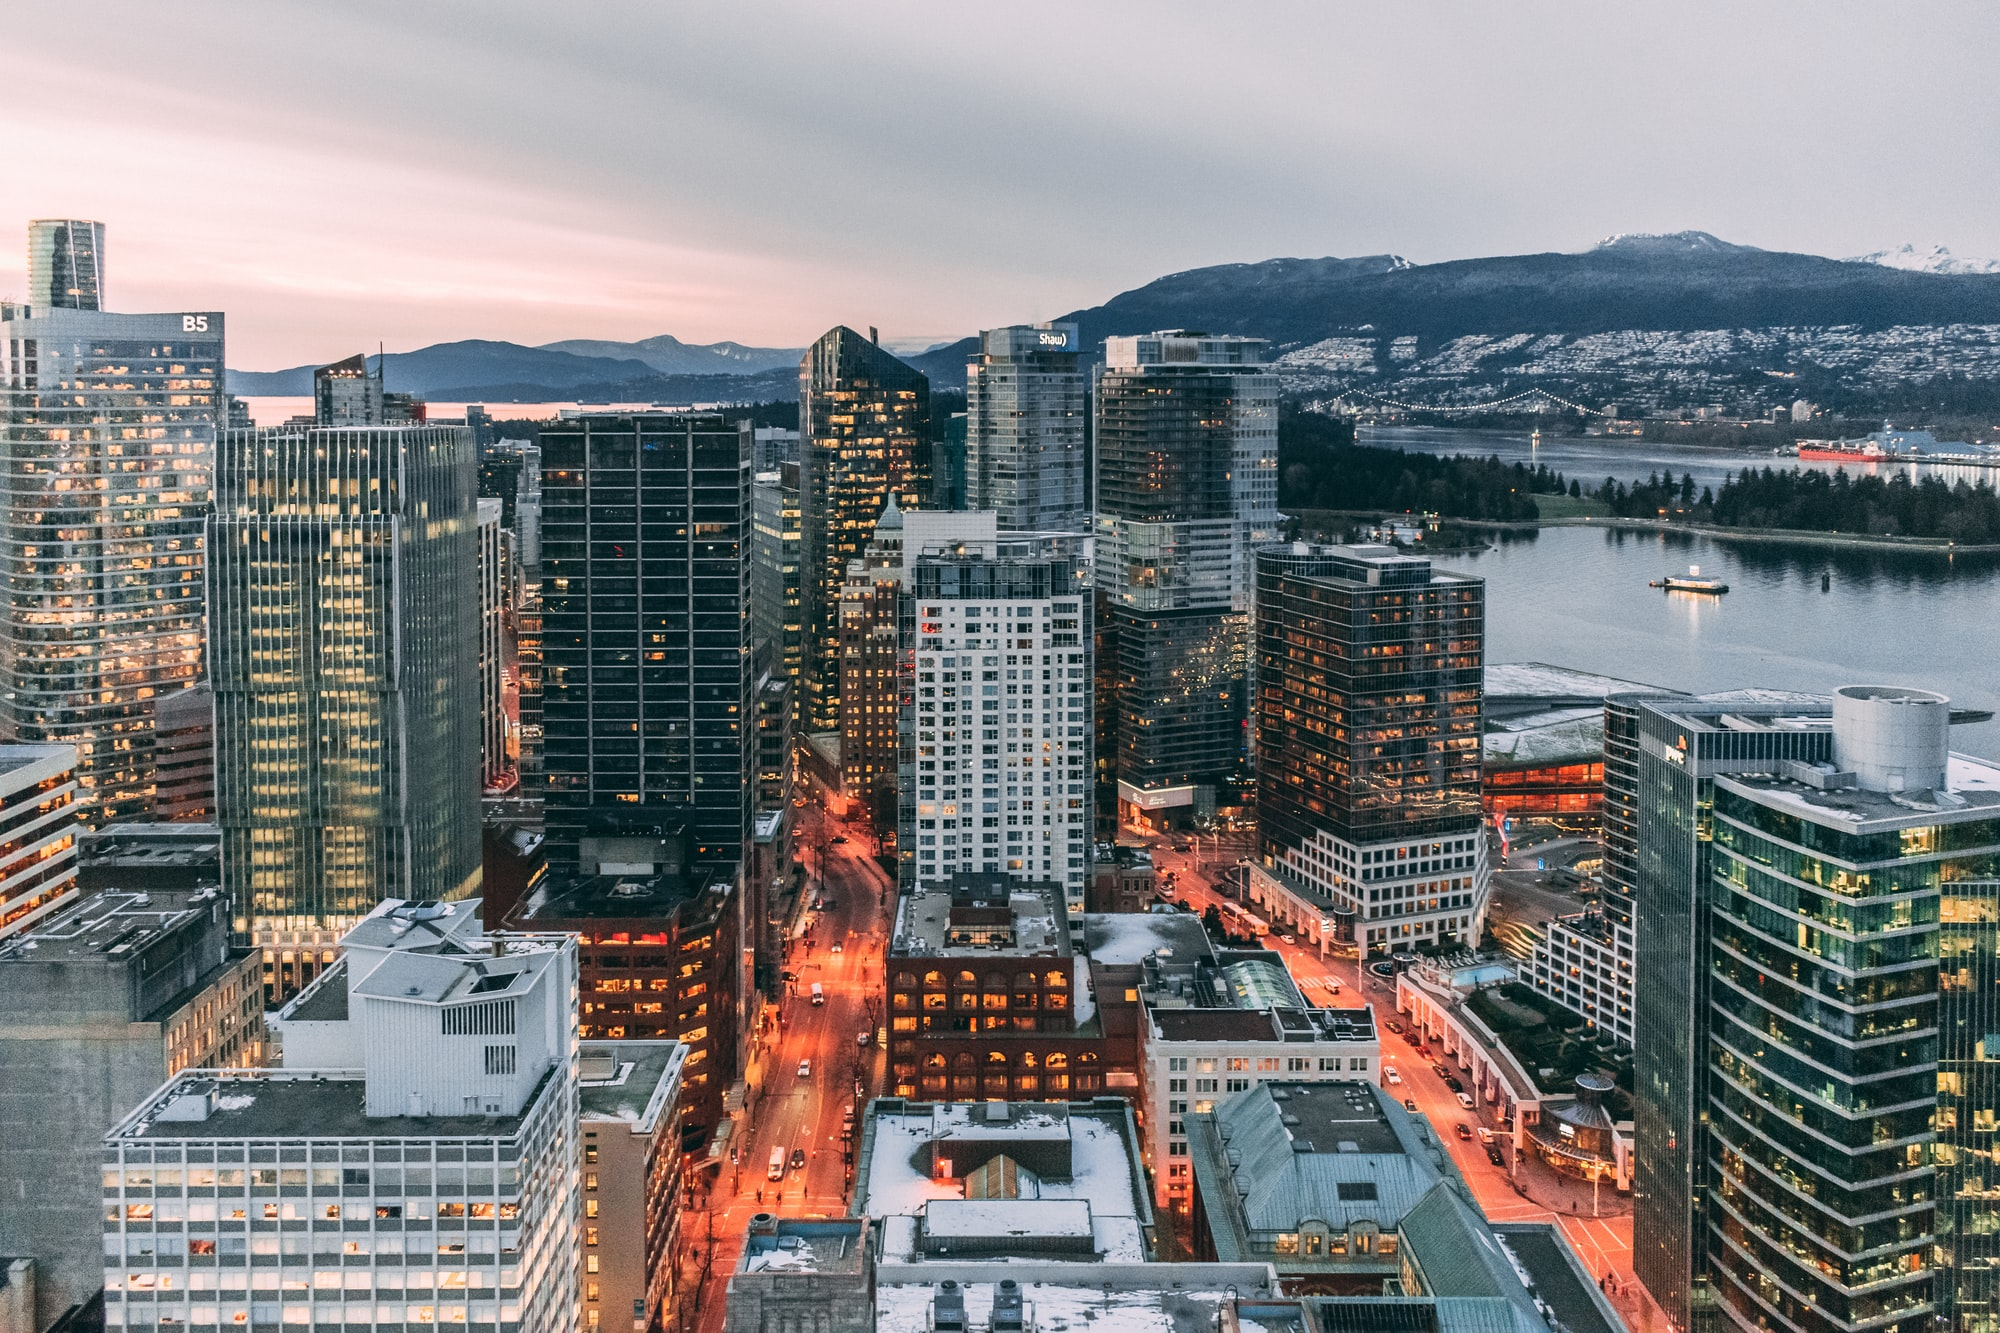 Be a tourist in Vancouver, British Columbia